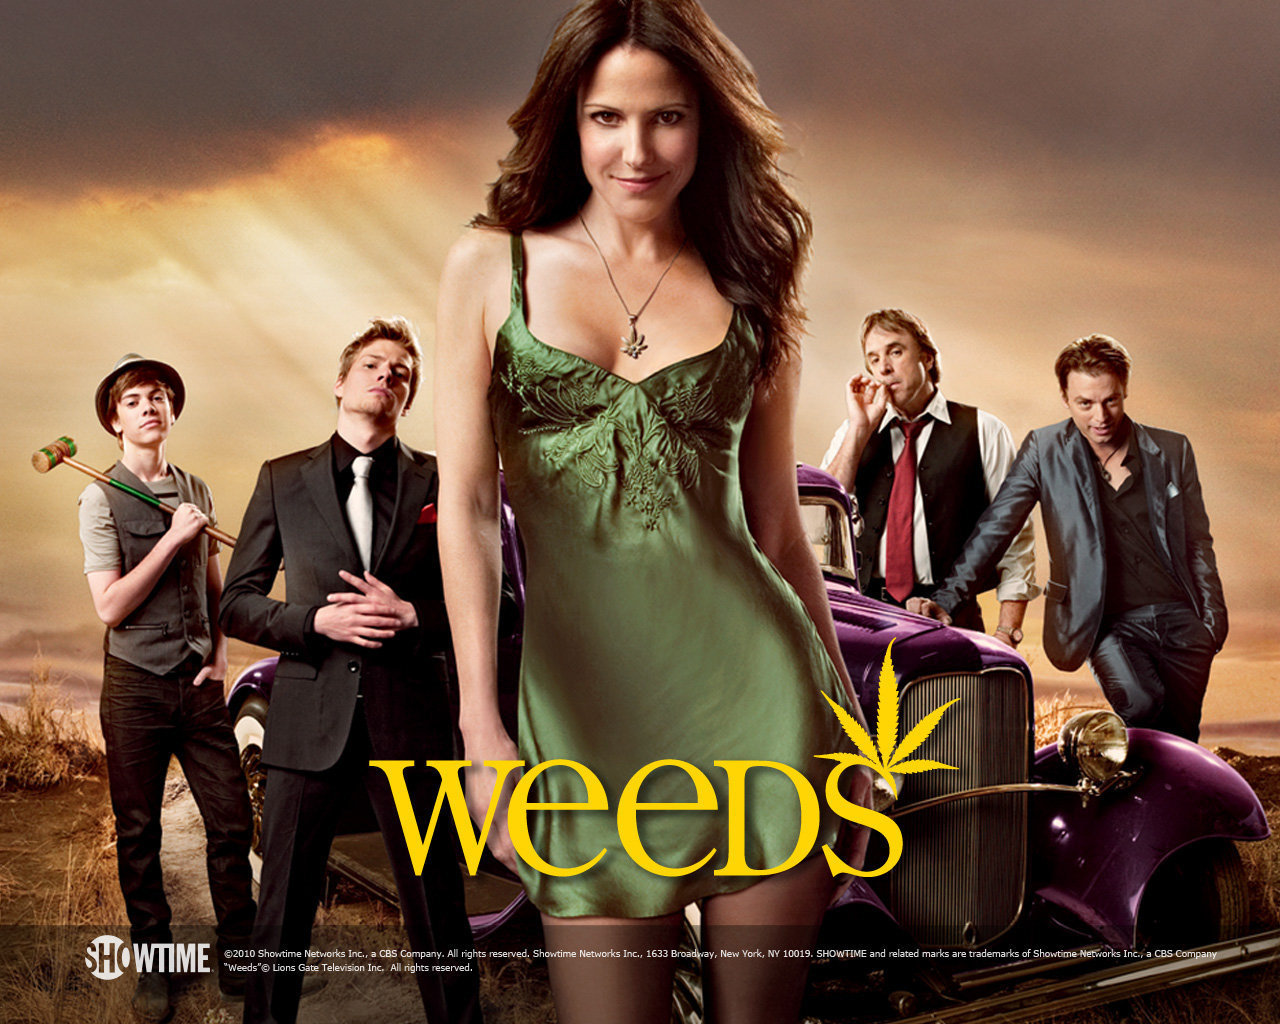 Give you download for all the season of weeds